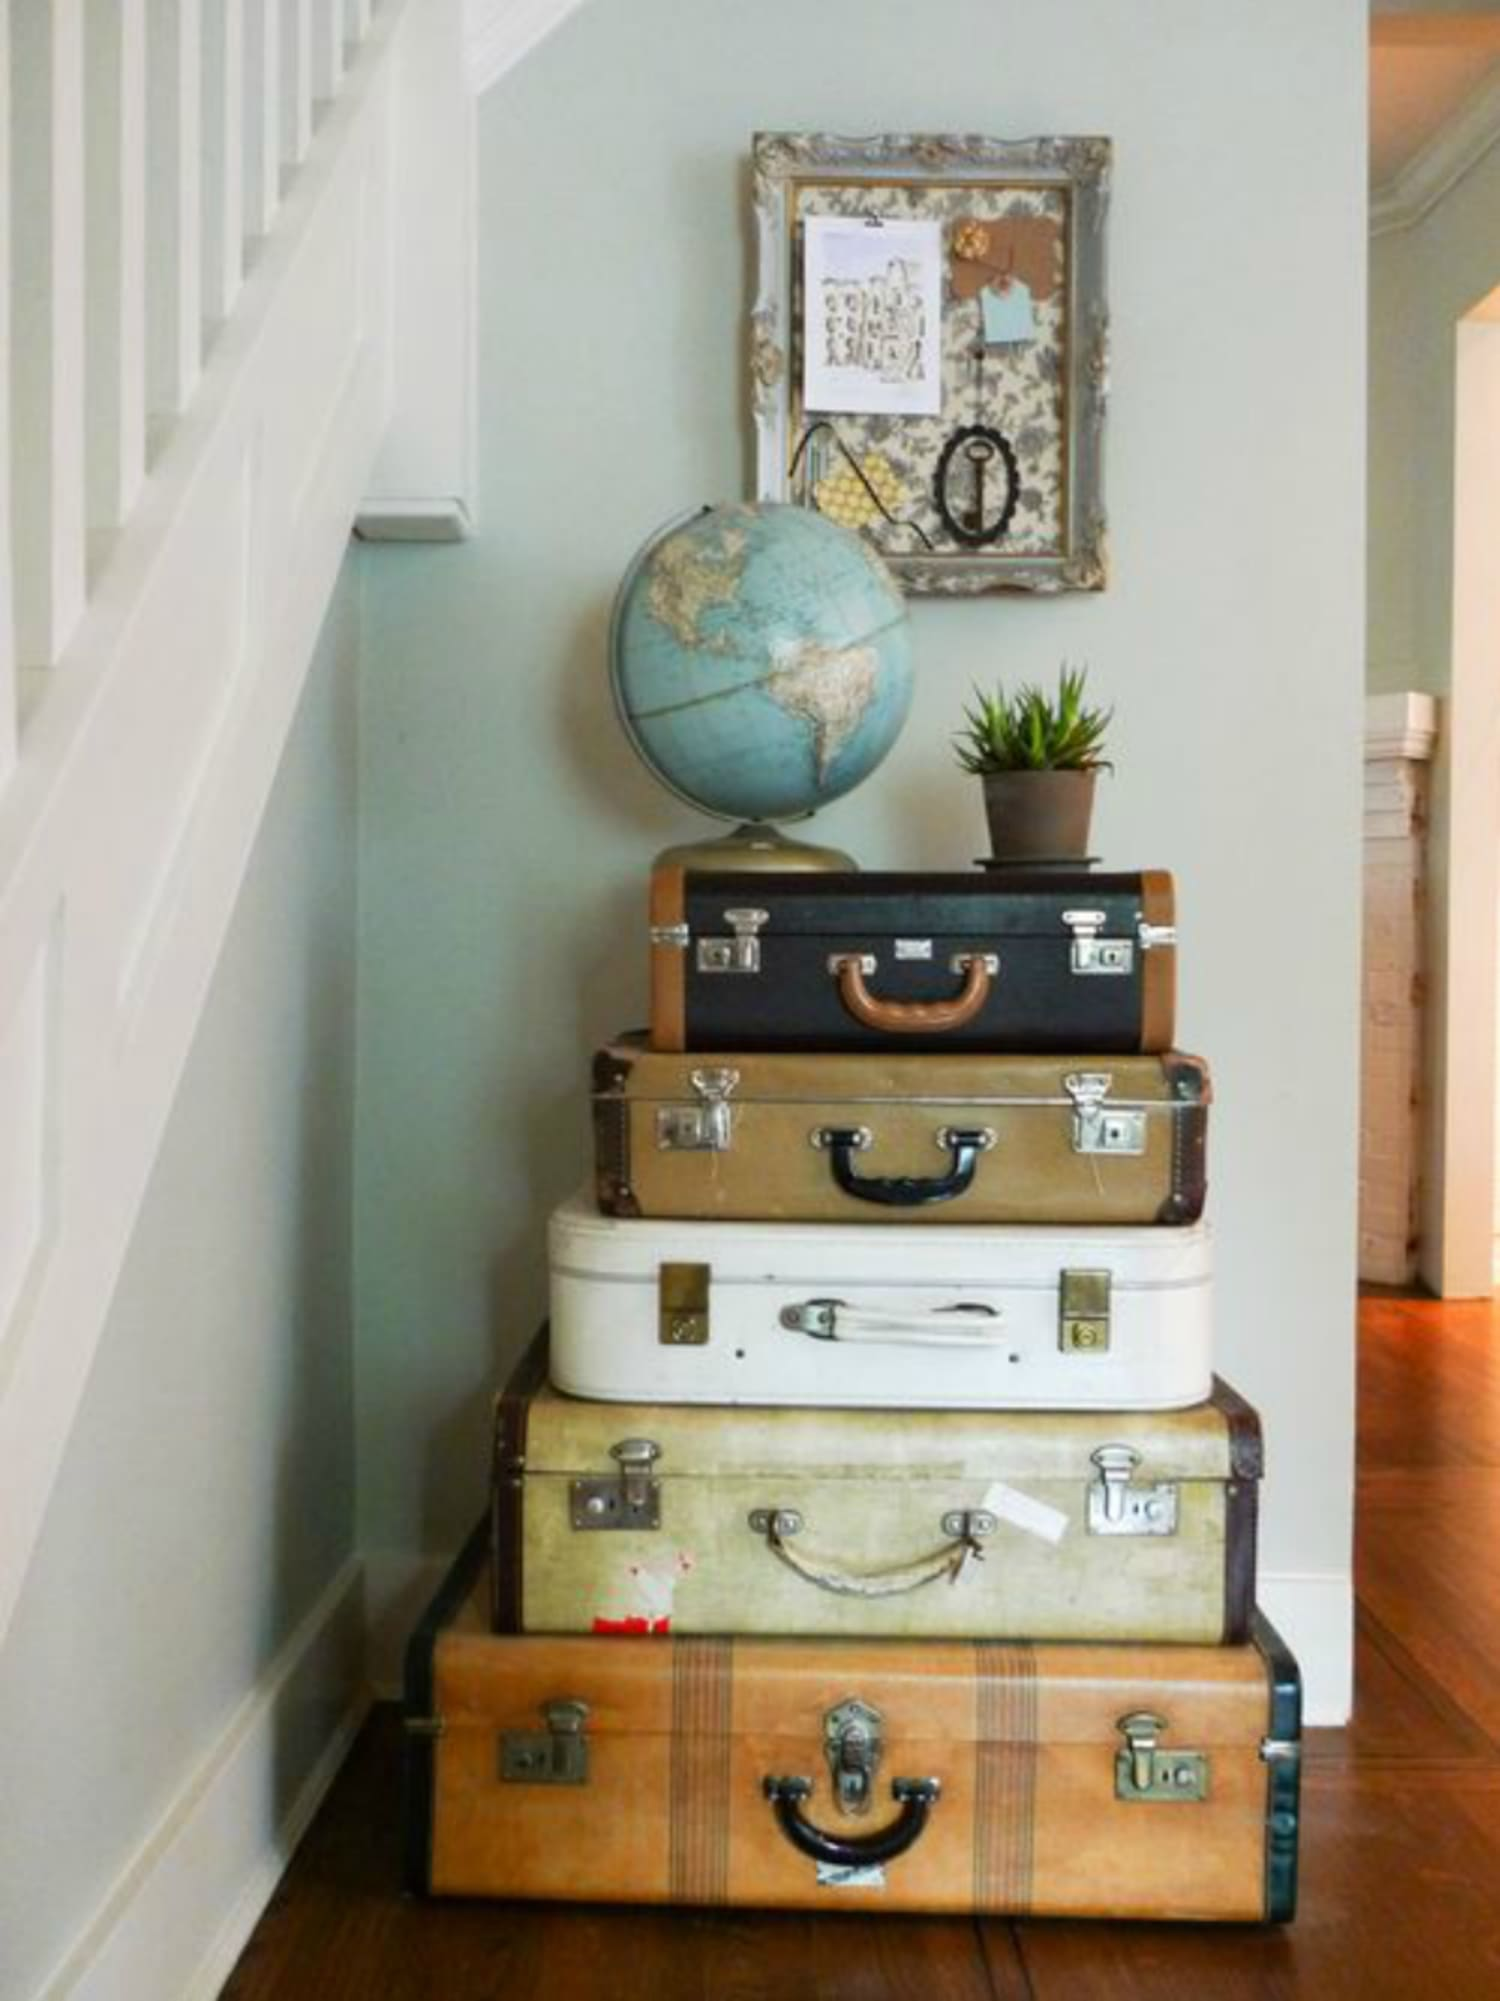 How to Repurpose Old Luggage and Suitcases